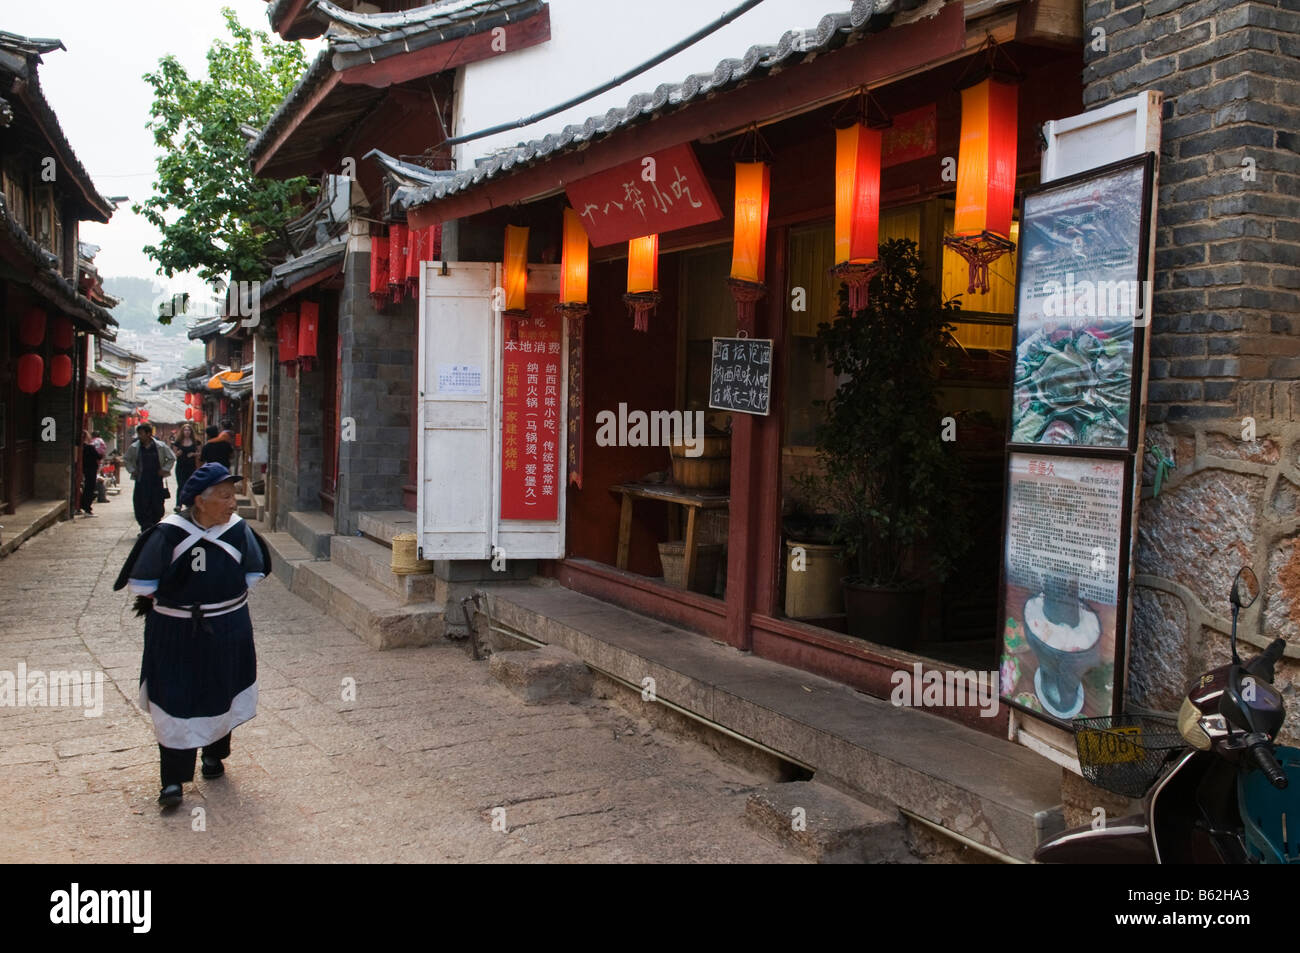 China Yunnan province Lijiang town Unesco World Heritage Site - Stock Image